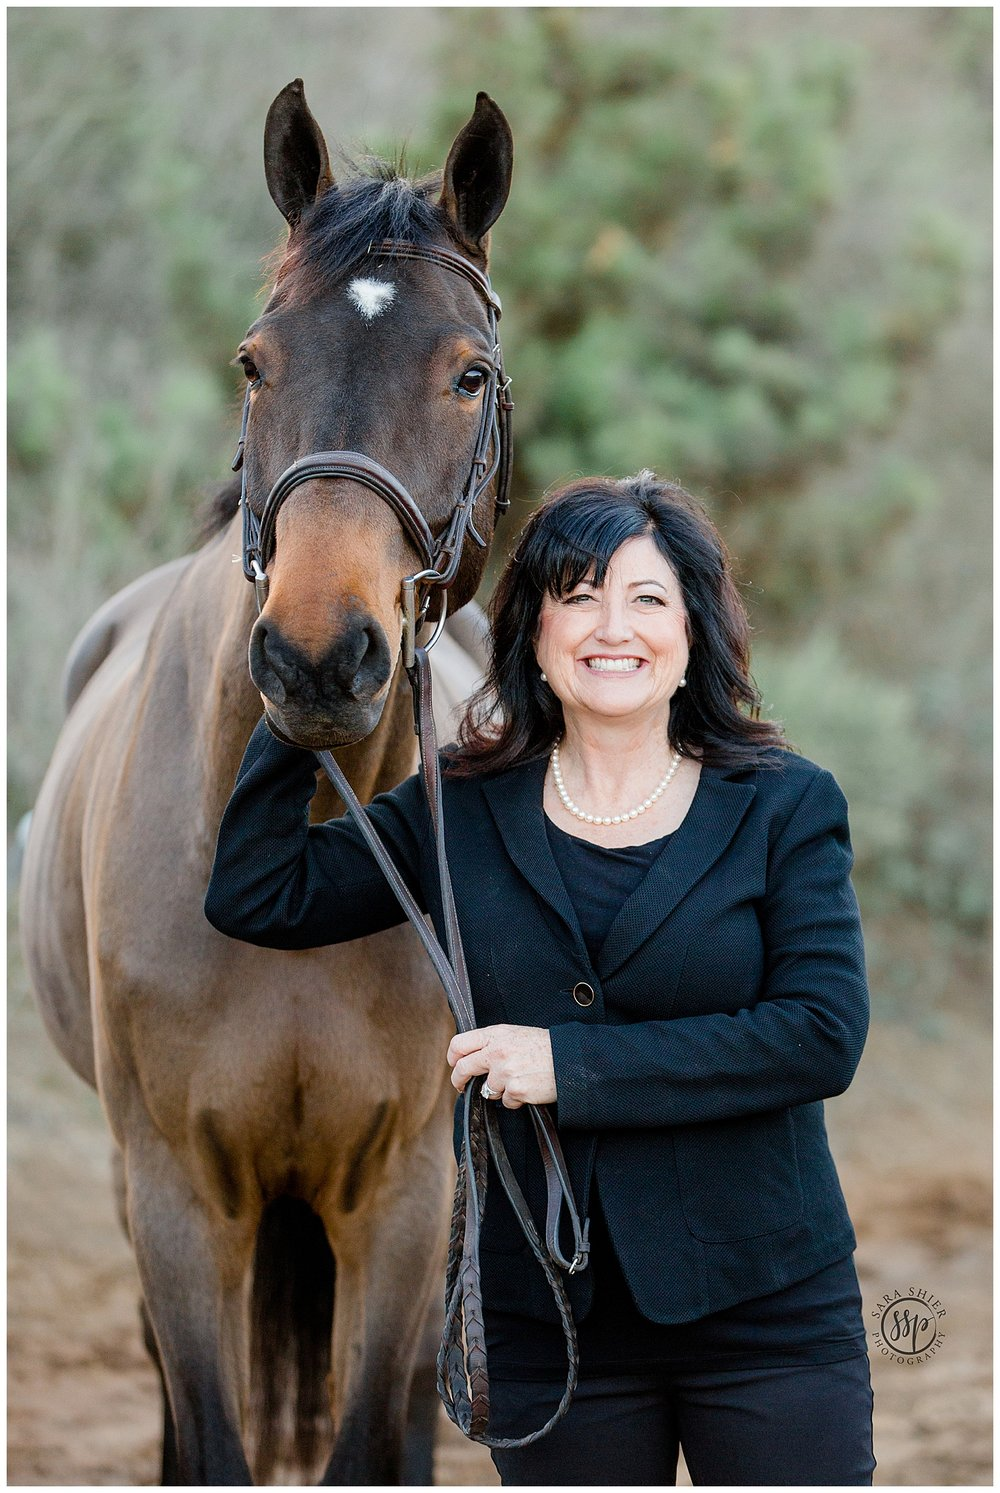 Black Background Horse Rider Equine Photographer Southern California Sara Shier Photography SoCal Equestrian Cowgirl_0455.jpg